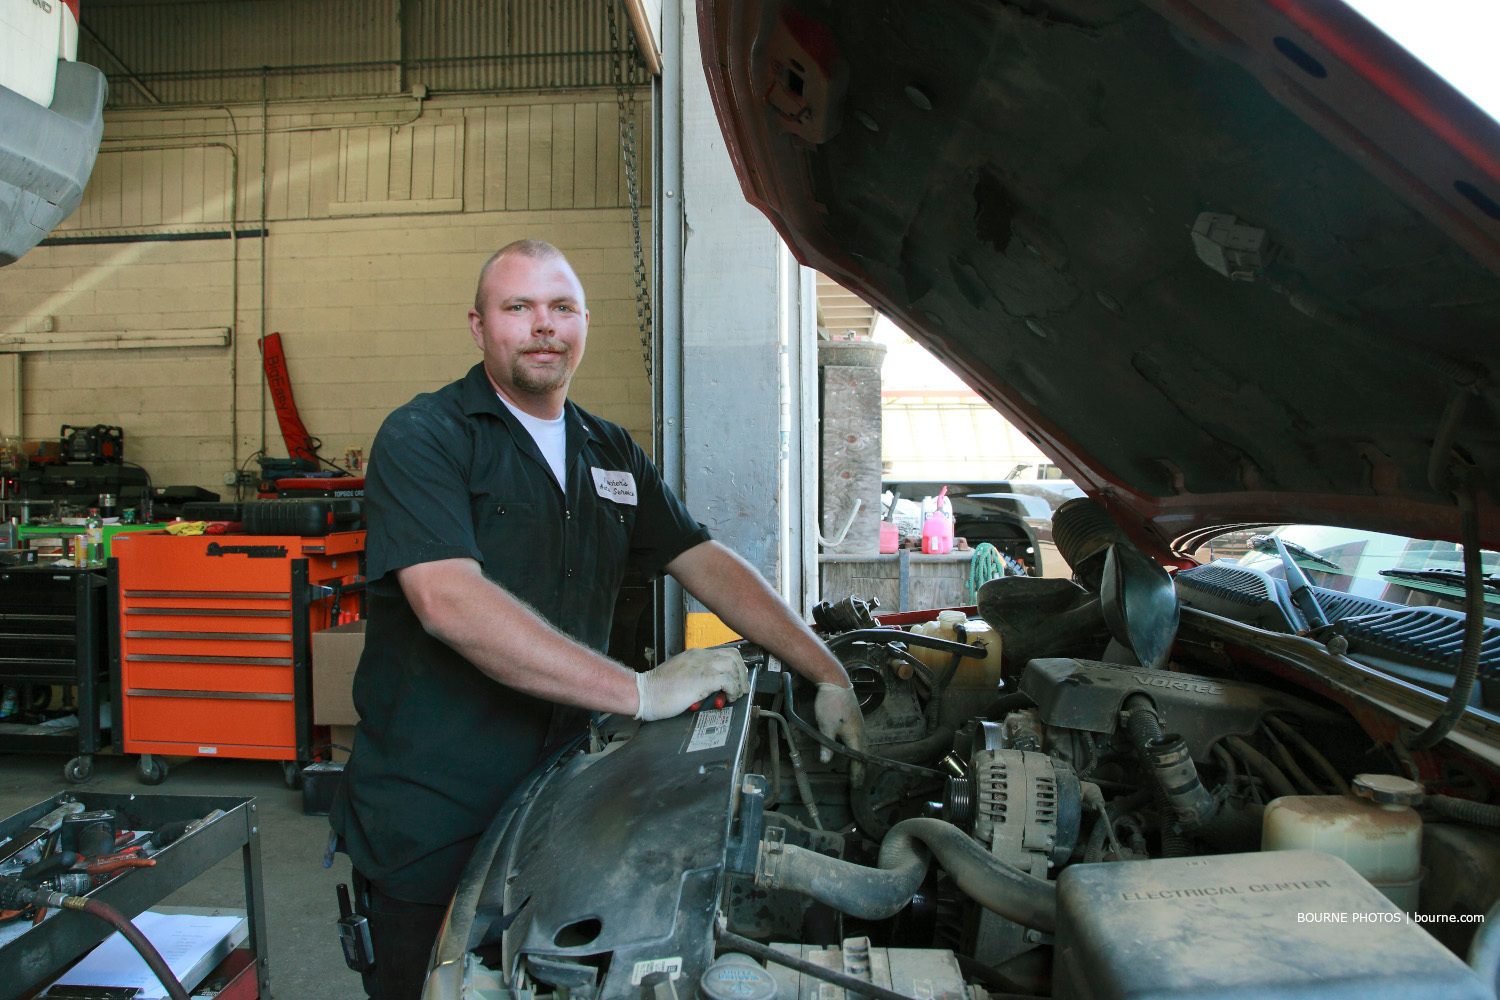 man posing for picture with hands working on car engine. auto shop in background.